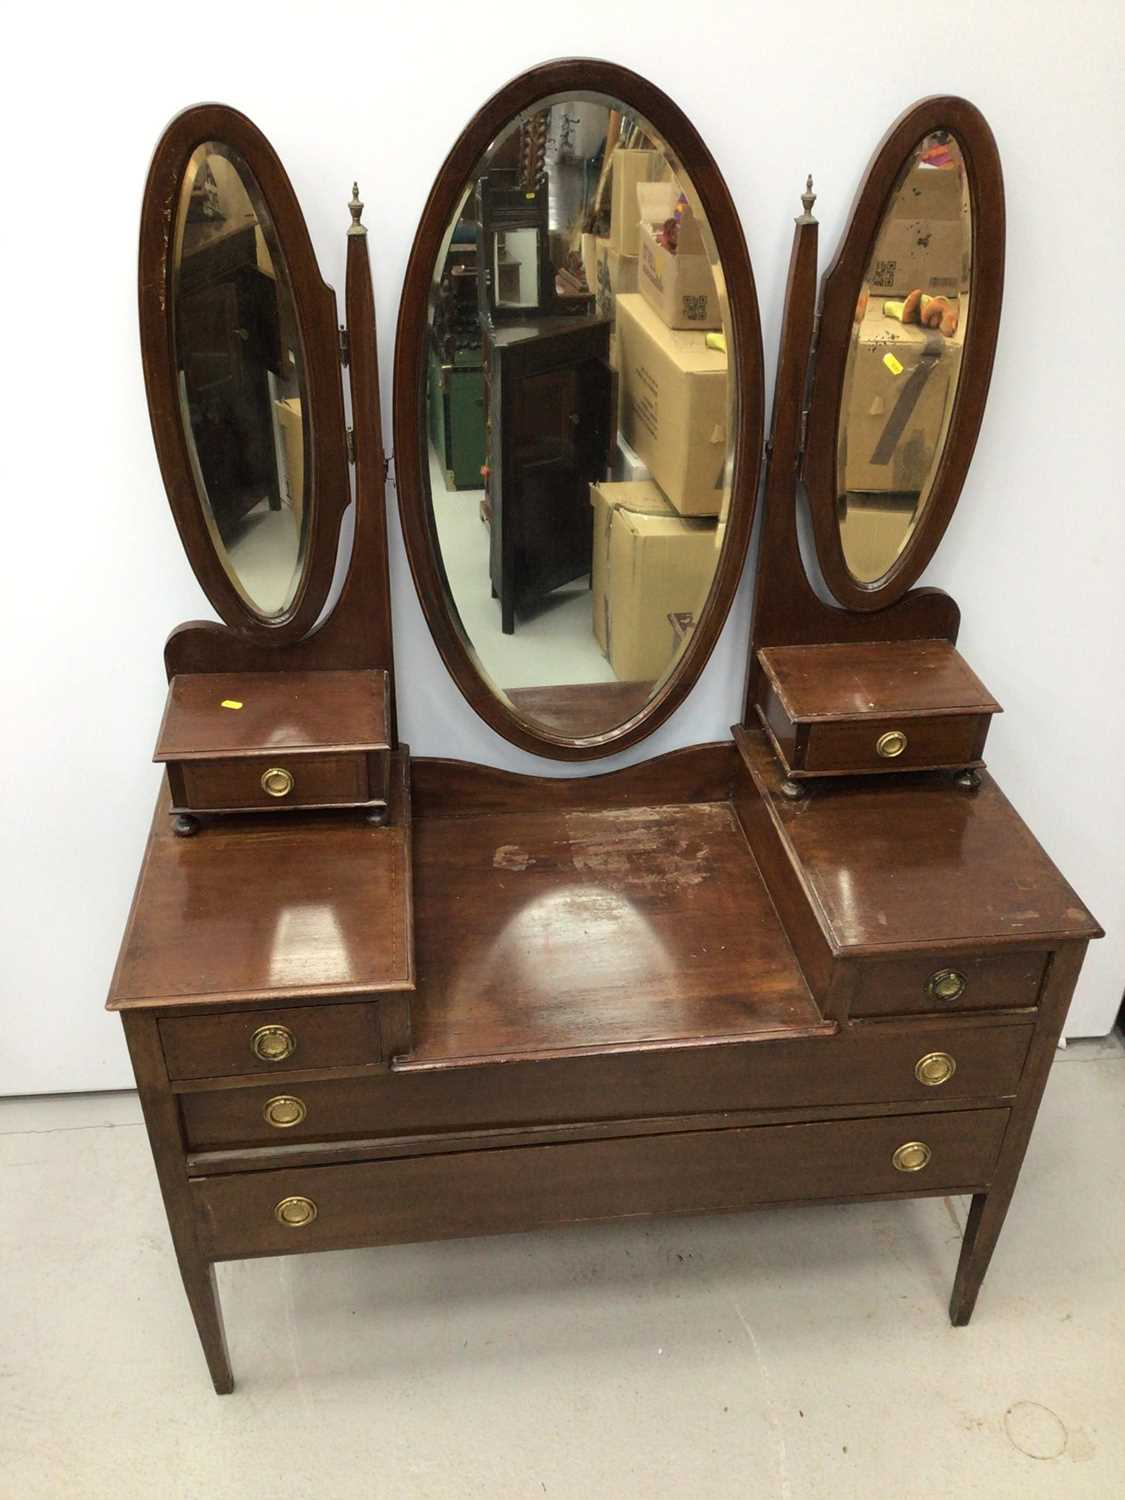 Lot 2 - Edwardian mahogany sunk centre dressing table with raised triple mirror back and four drawers below, 108cm wide x 48cm deep x 153cmn high